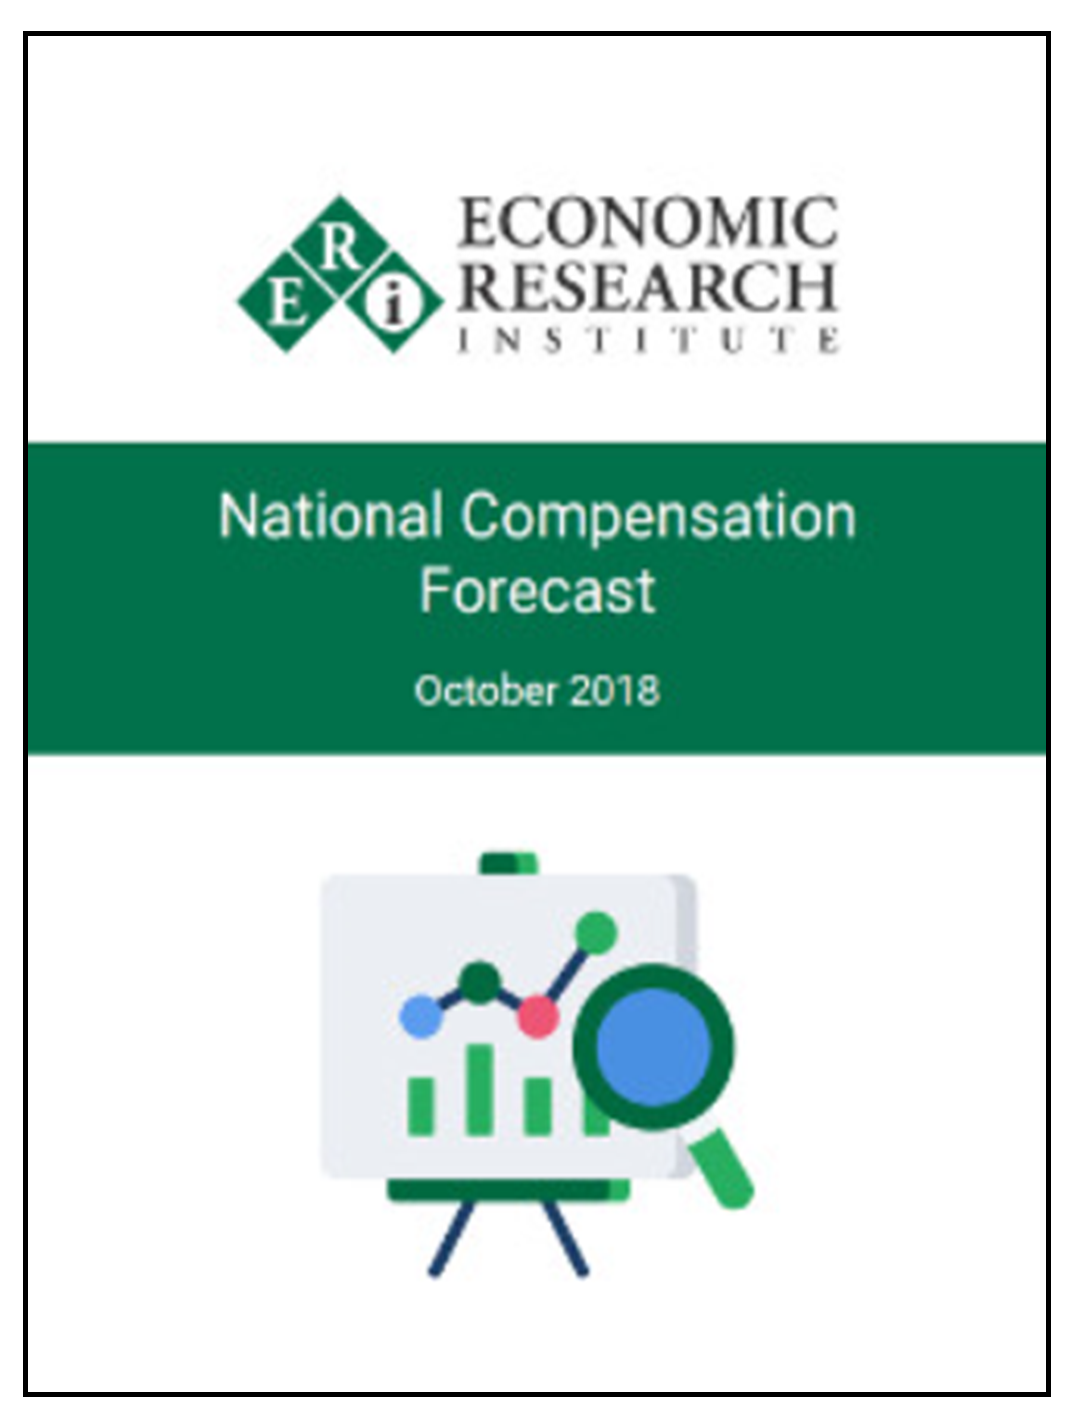 National Compensation Forecast October 2018